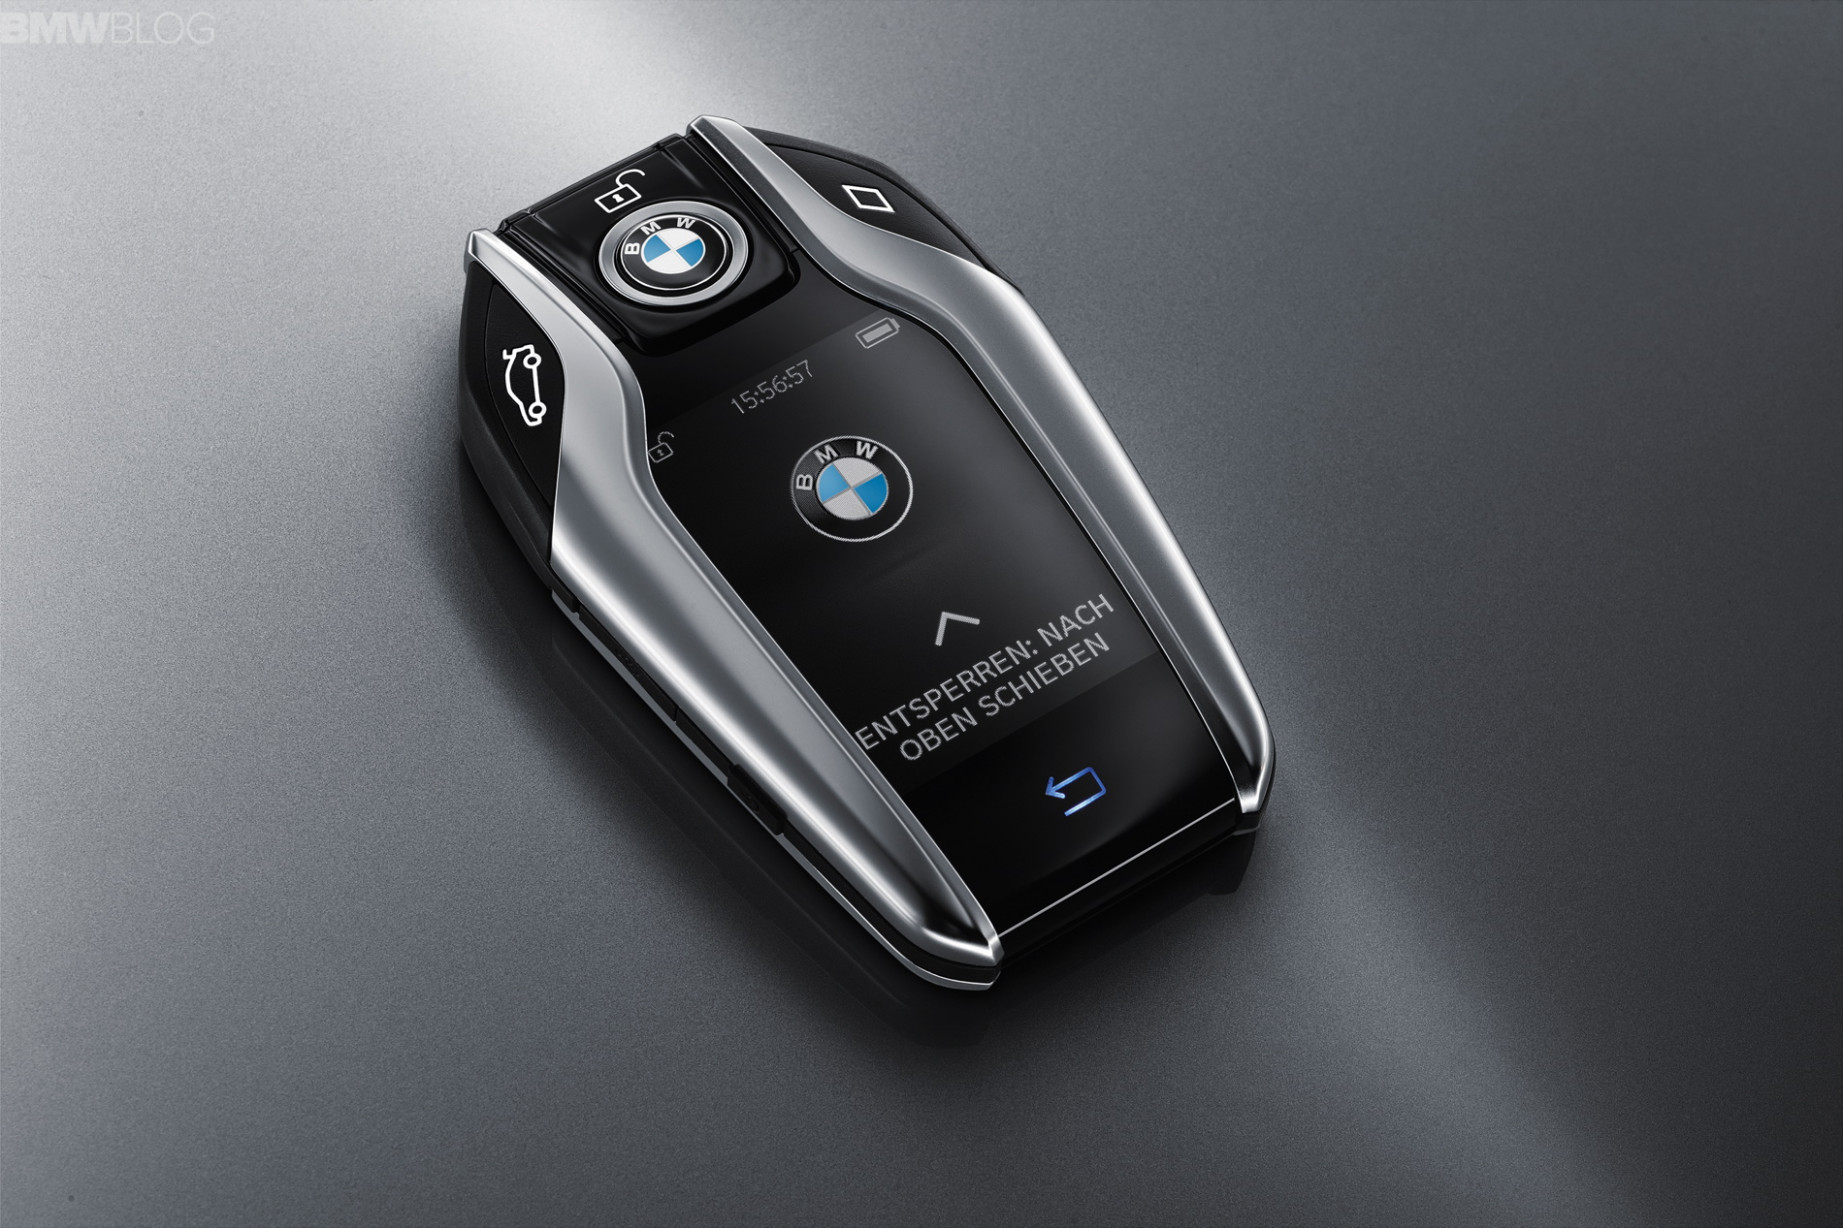 The new key fob for BMW 7 Series activates Remote Control Parking - 2020 bmw key